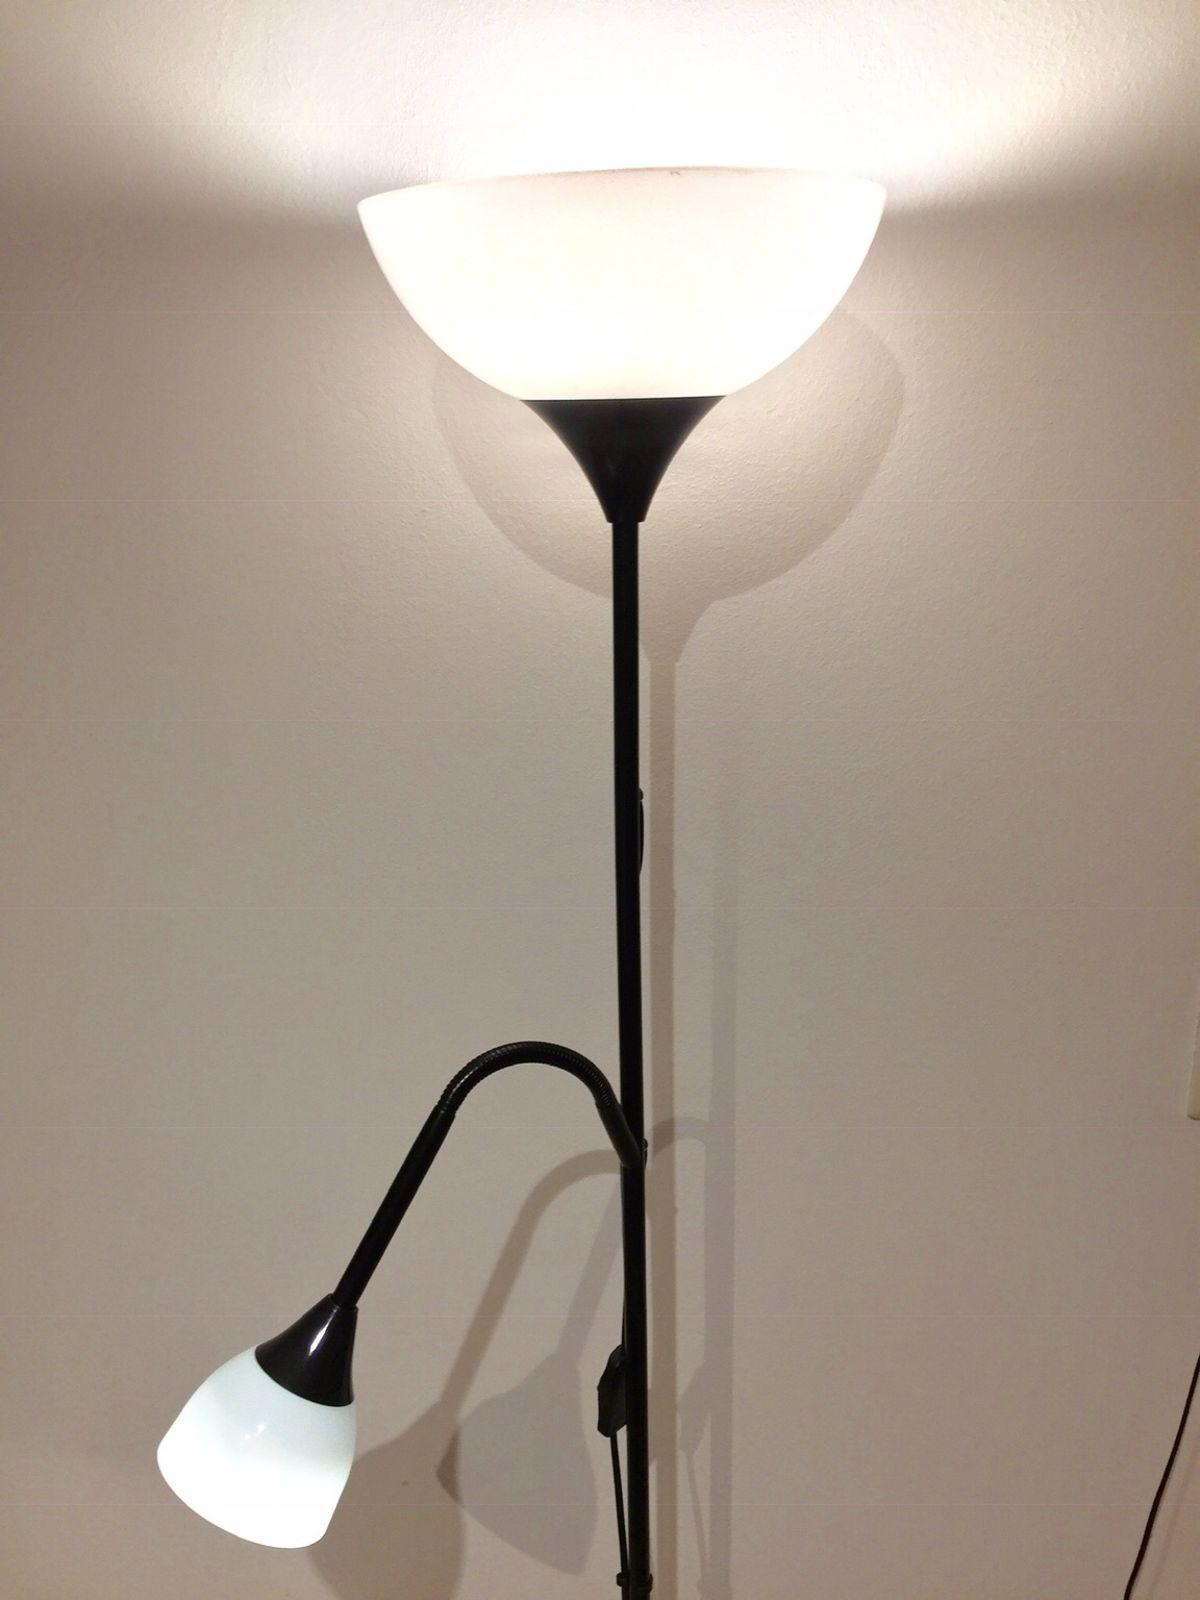 Ikea Leselampe Stehlampe